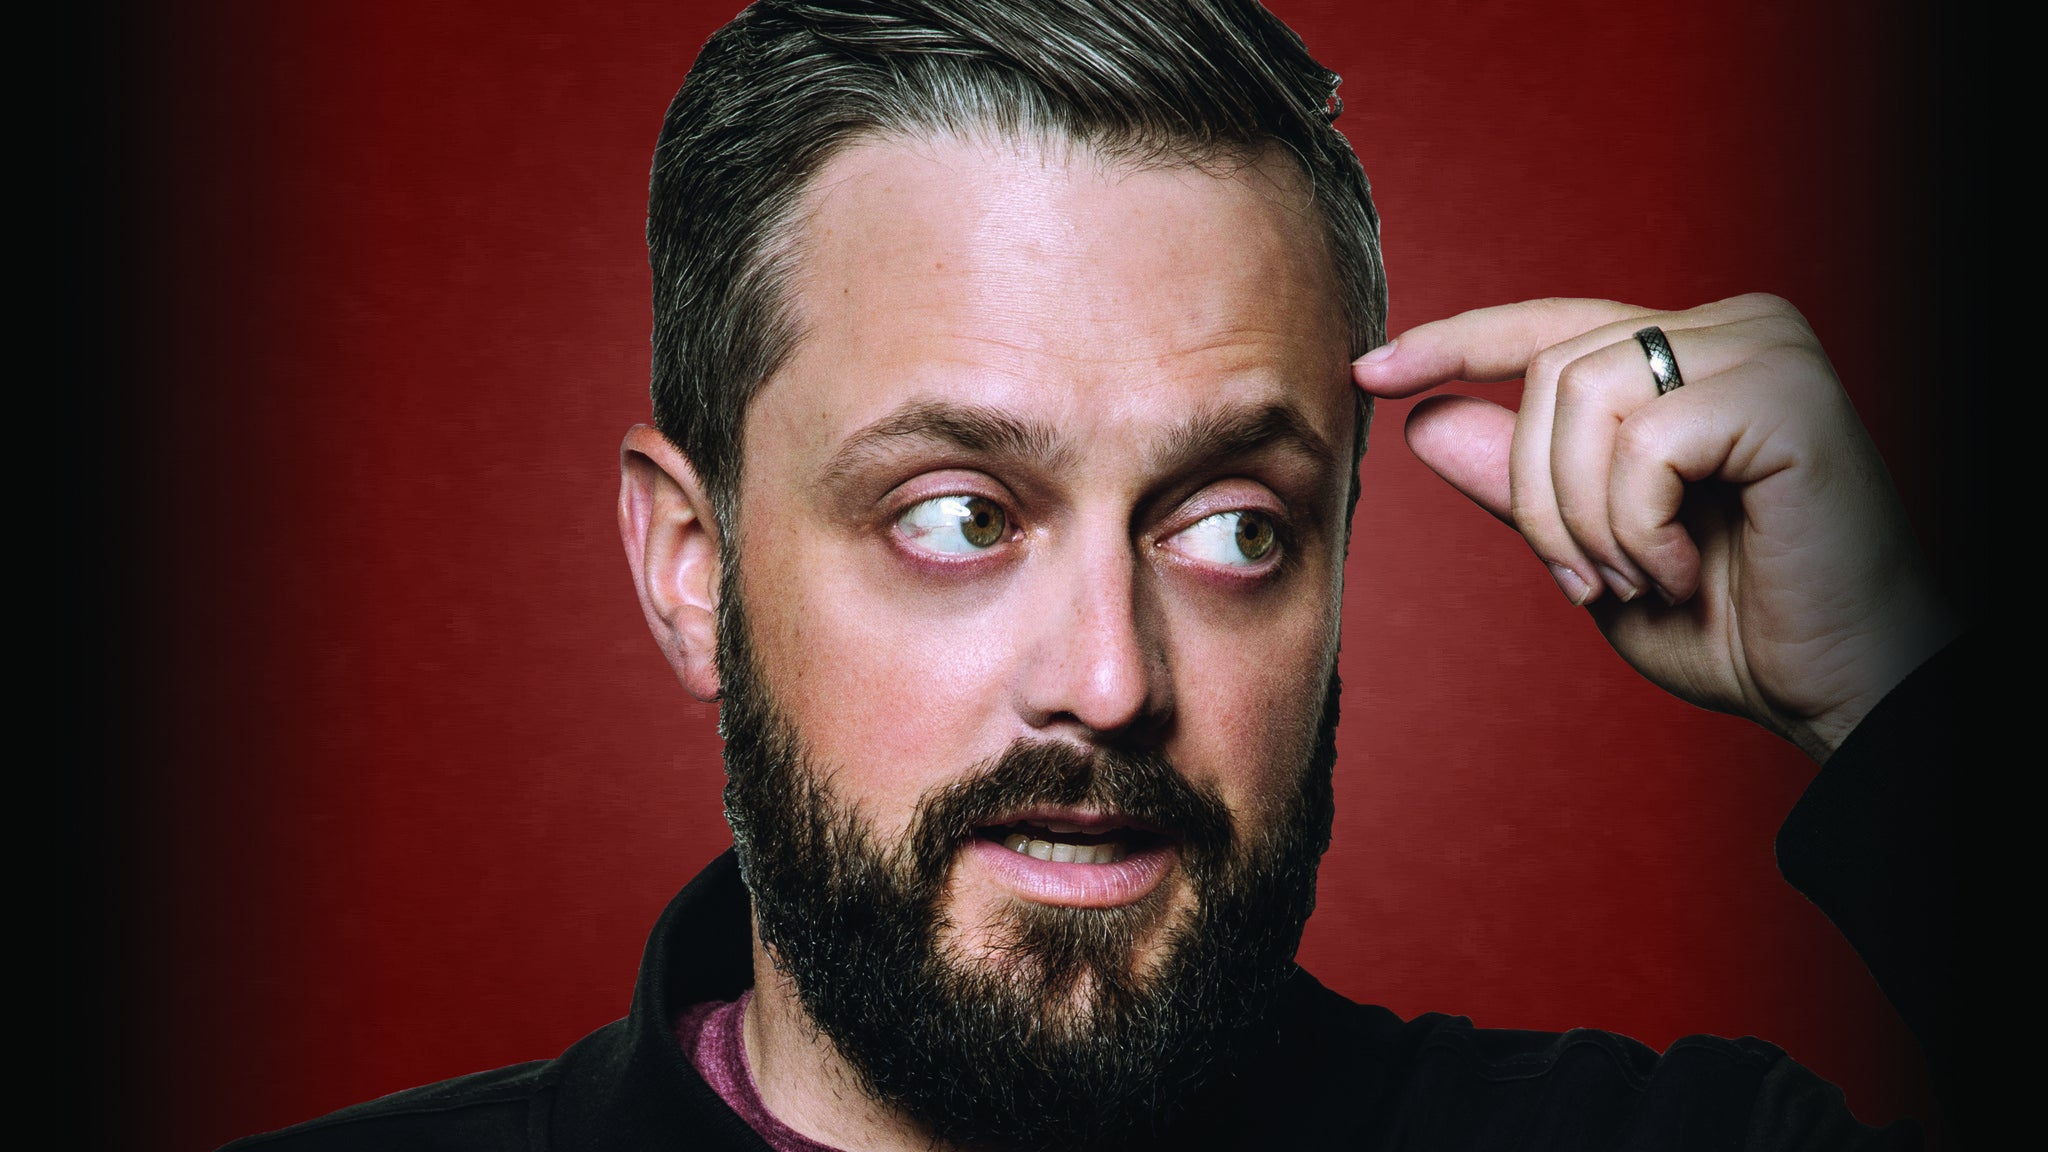 Nate Bargatze at Warner Theatre- CT - Torrington, CT 06790